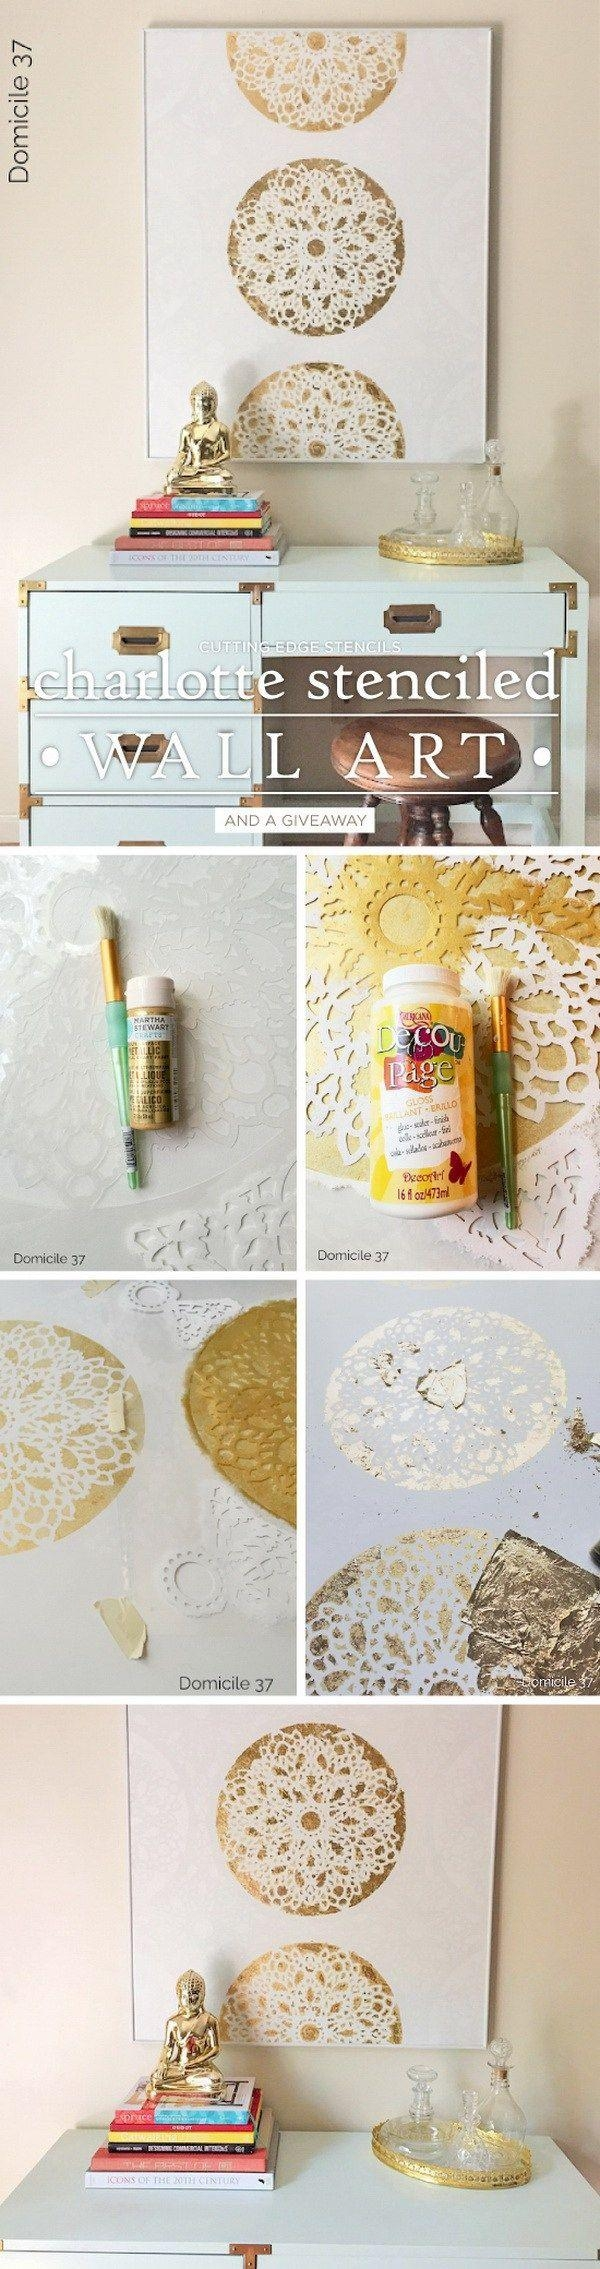 Best 25+ Fabric Wall Art Ideas On Pinterest | Large Wall Art For Stretched Fabric Wall Art (Image 4 of 20)